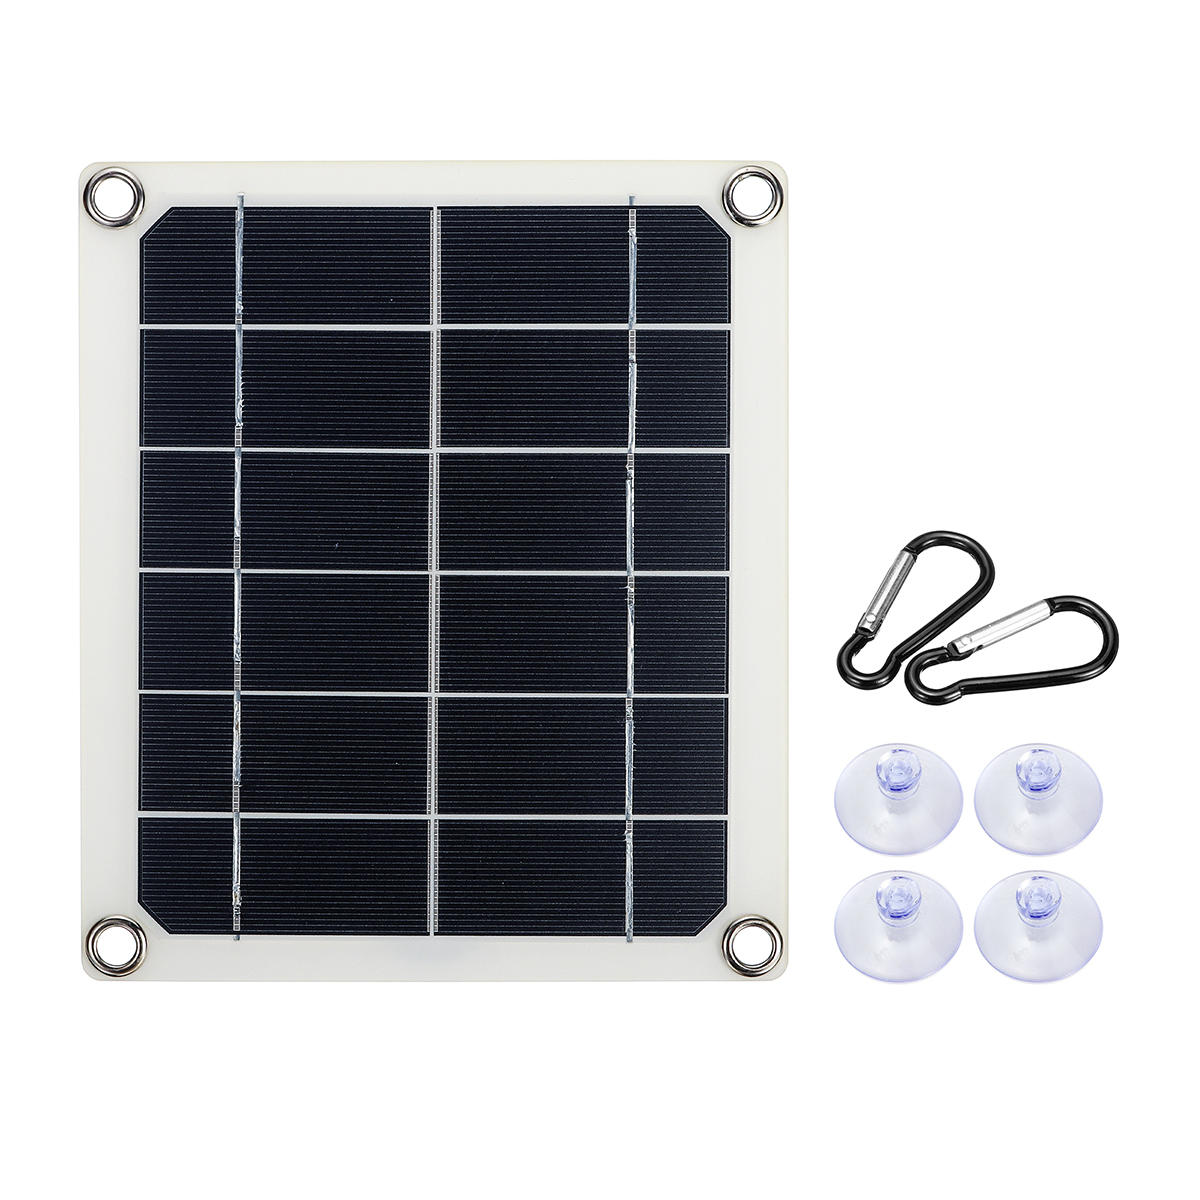 5W 5V Semi-Flexible Monocrystalline Solar Panel with Junction Box Dual USB Charger + 4xSucker + 2xCarabiner Kit for Outdoor Charger